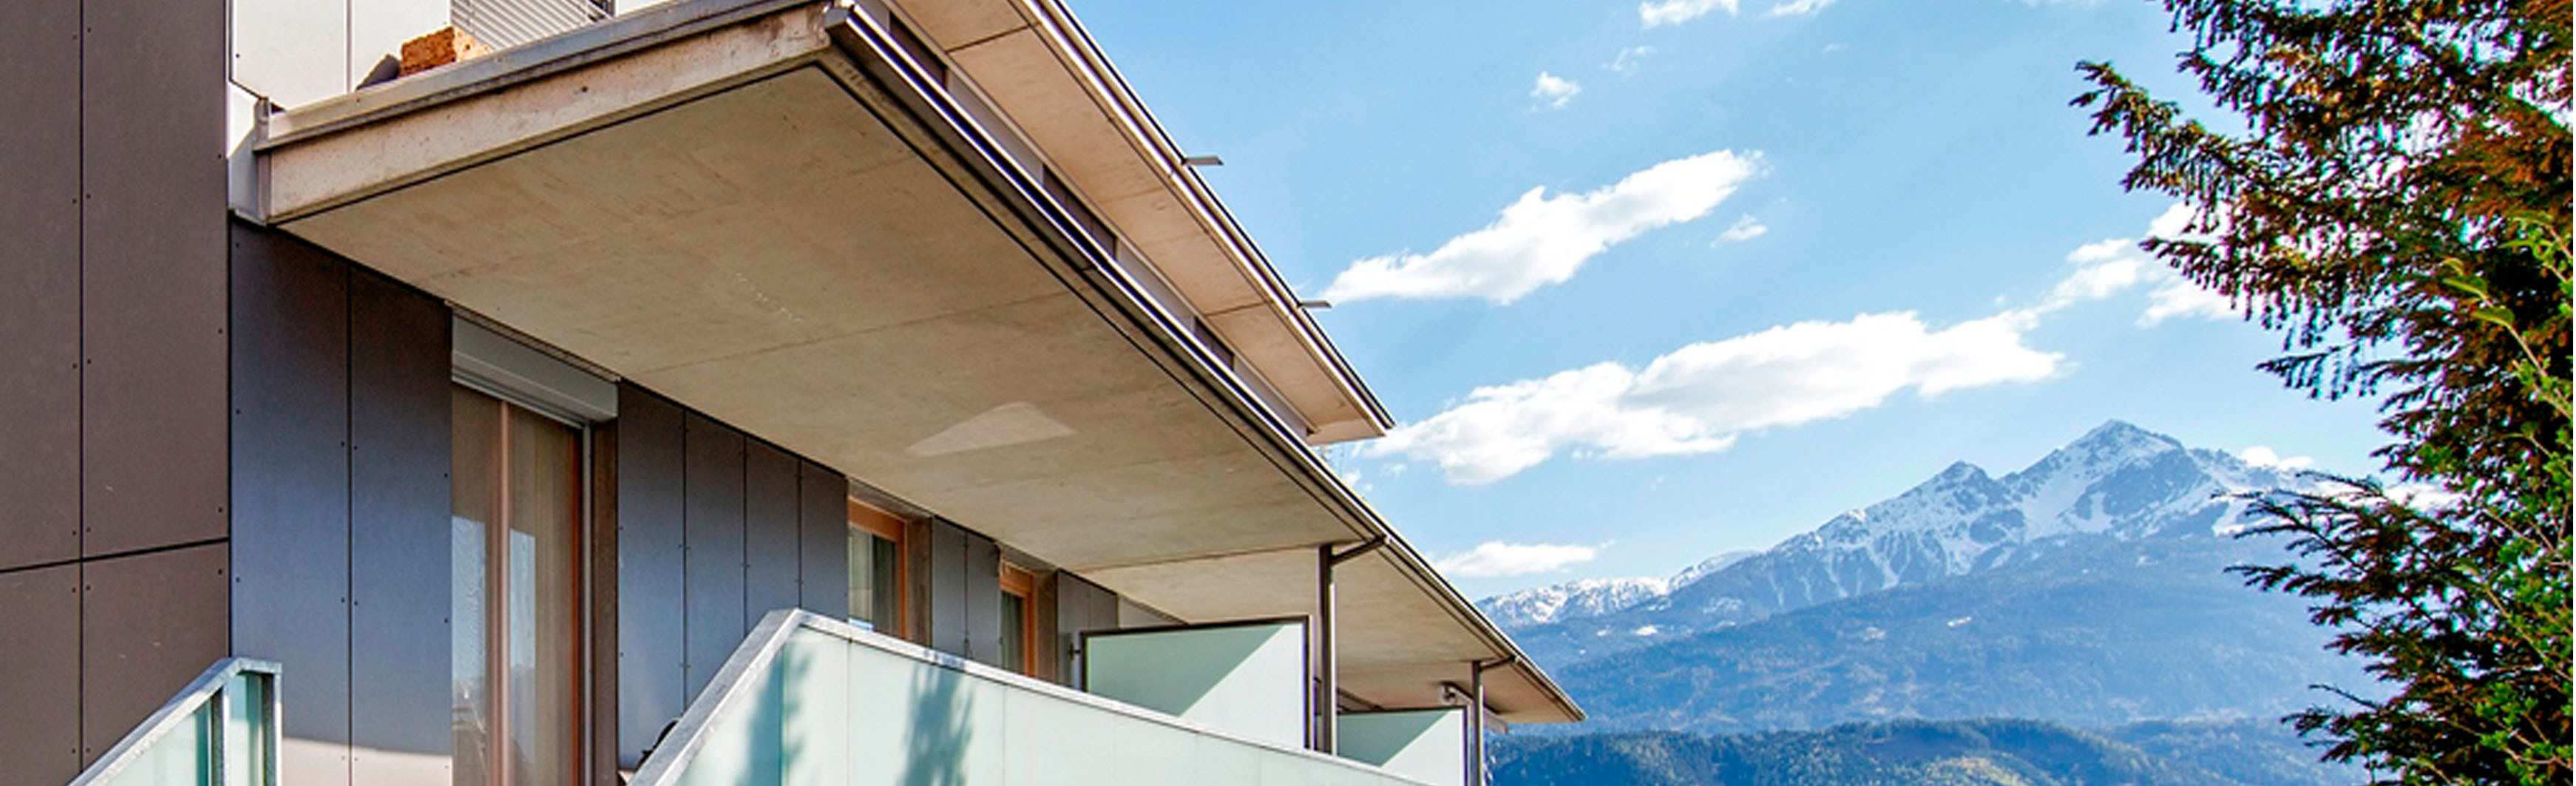 Immobilien in Innsbruck - Slider-4-170615.jpg